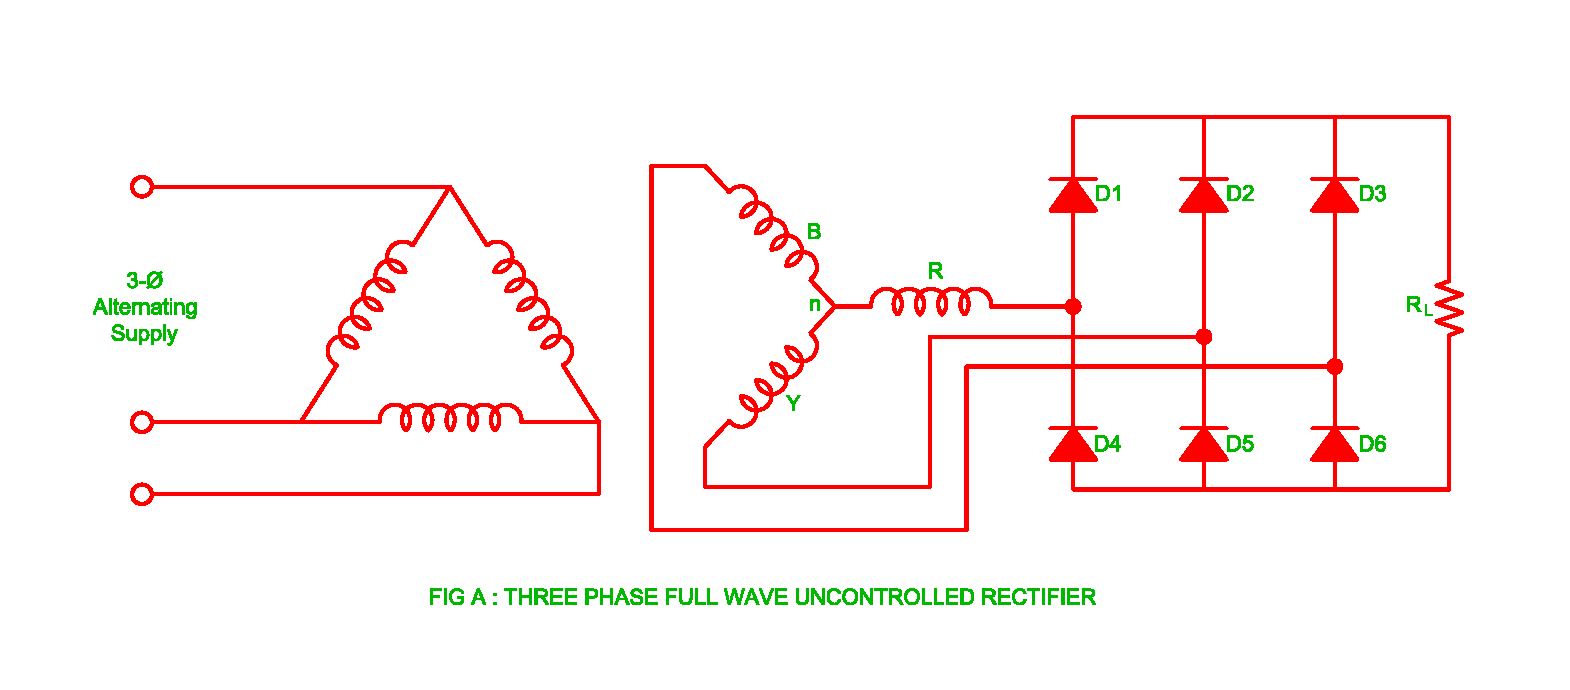 Working Of Three Phase Uncontrolled Full Wave Rectifier Electrical The Answer Converters